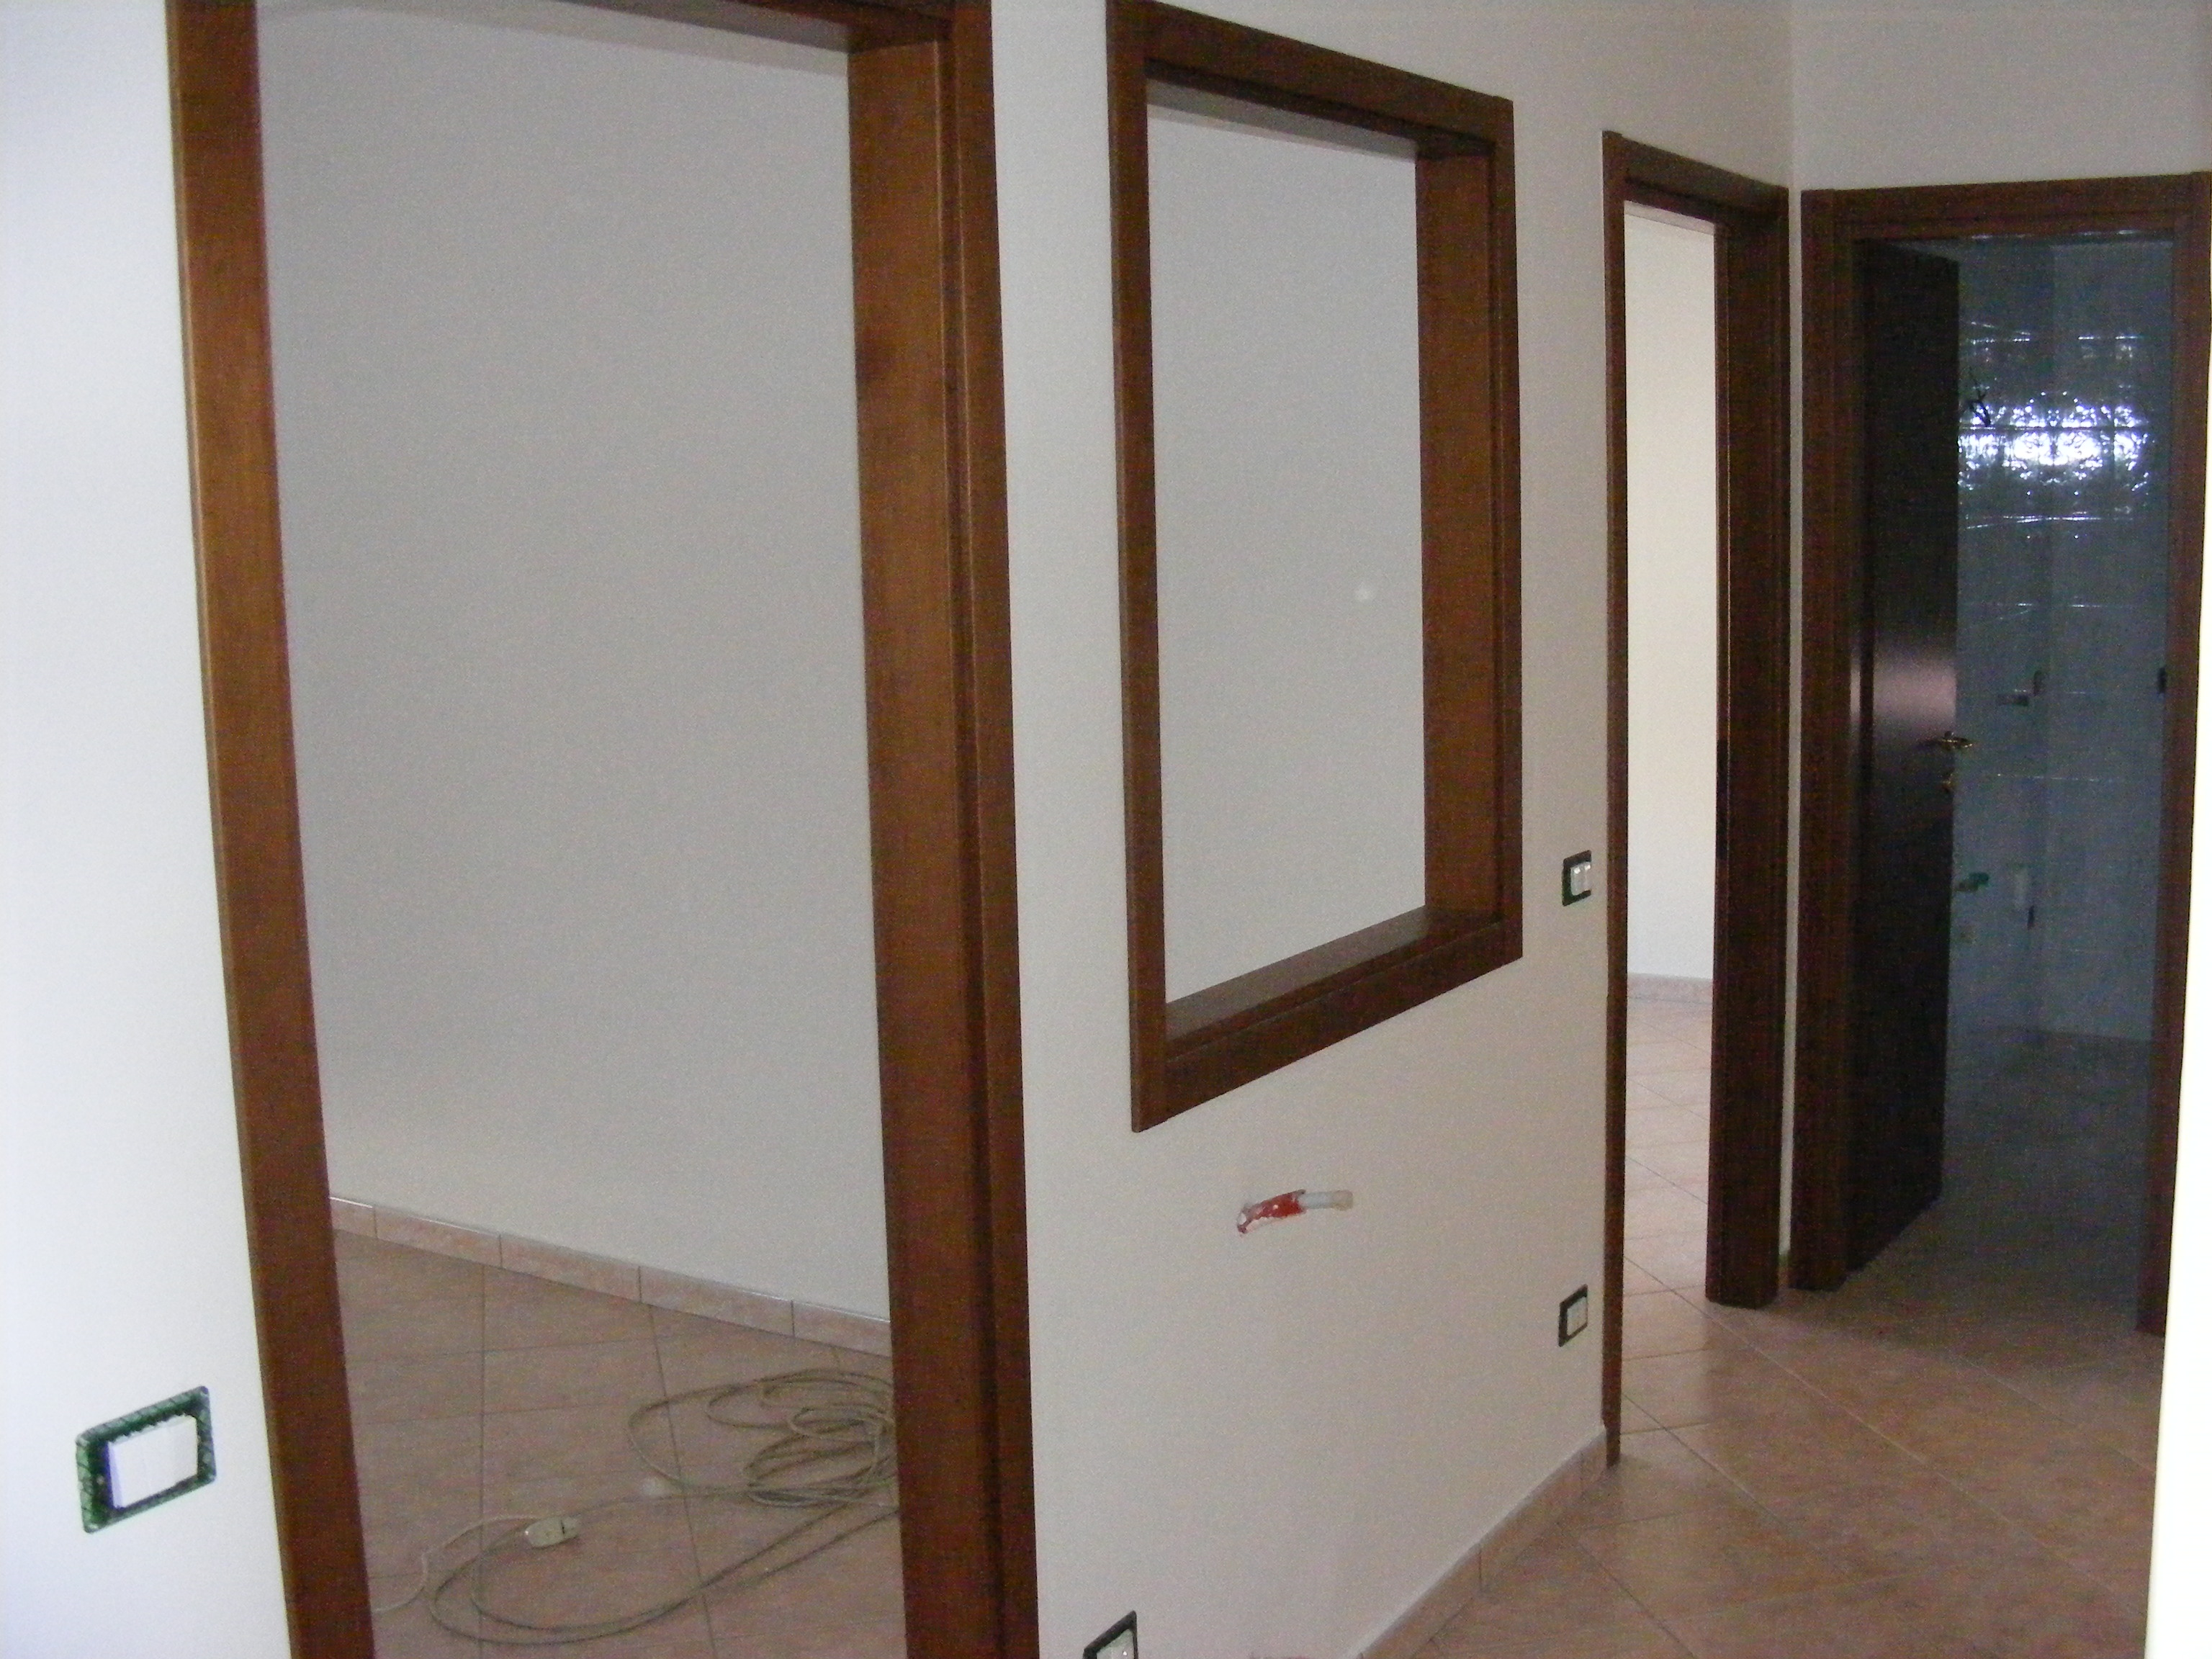 interior bedroom doors for rent 2 bedrooms cologno monzese milan italy via 11898